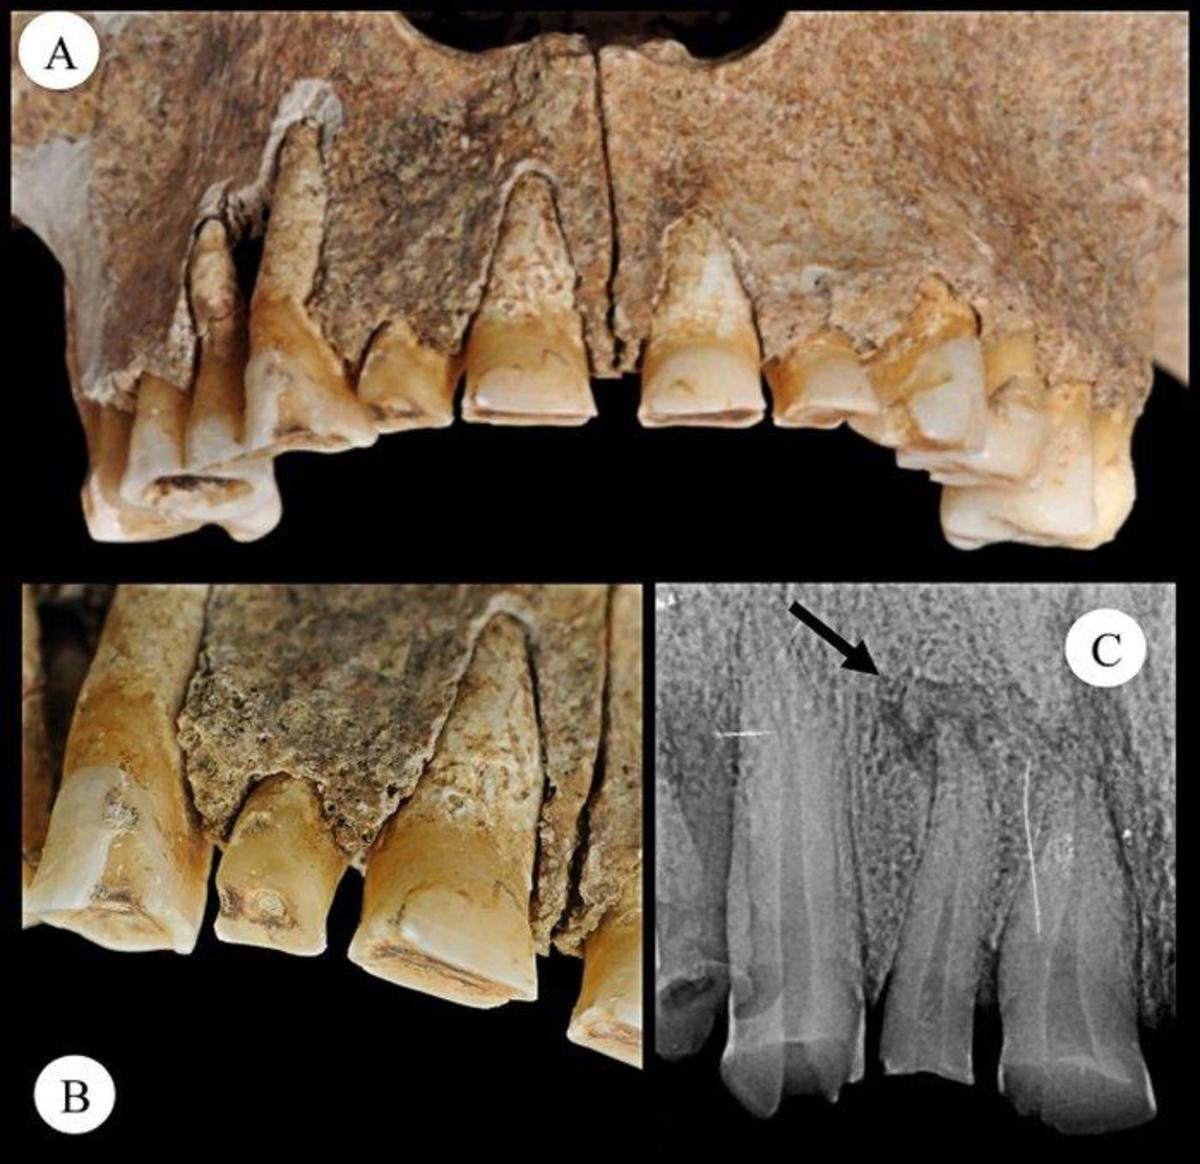 Photos of the skeletons teeth that show signs of wear, indicating the individual may have used their teeth to attach the knife. (Credit: leana Micarelli et al., 2018)